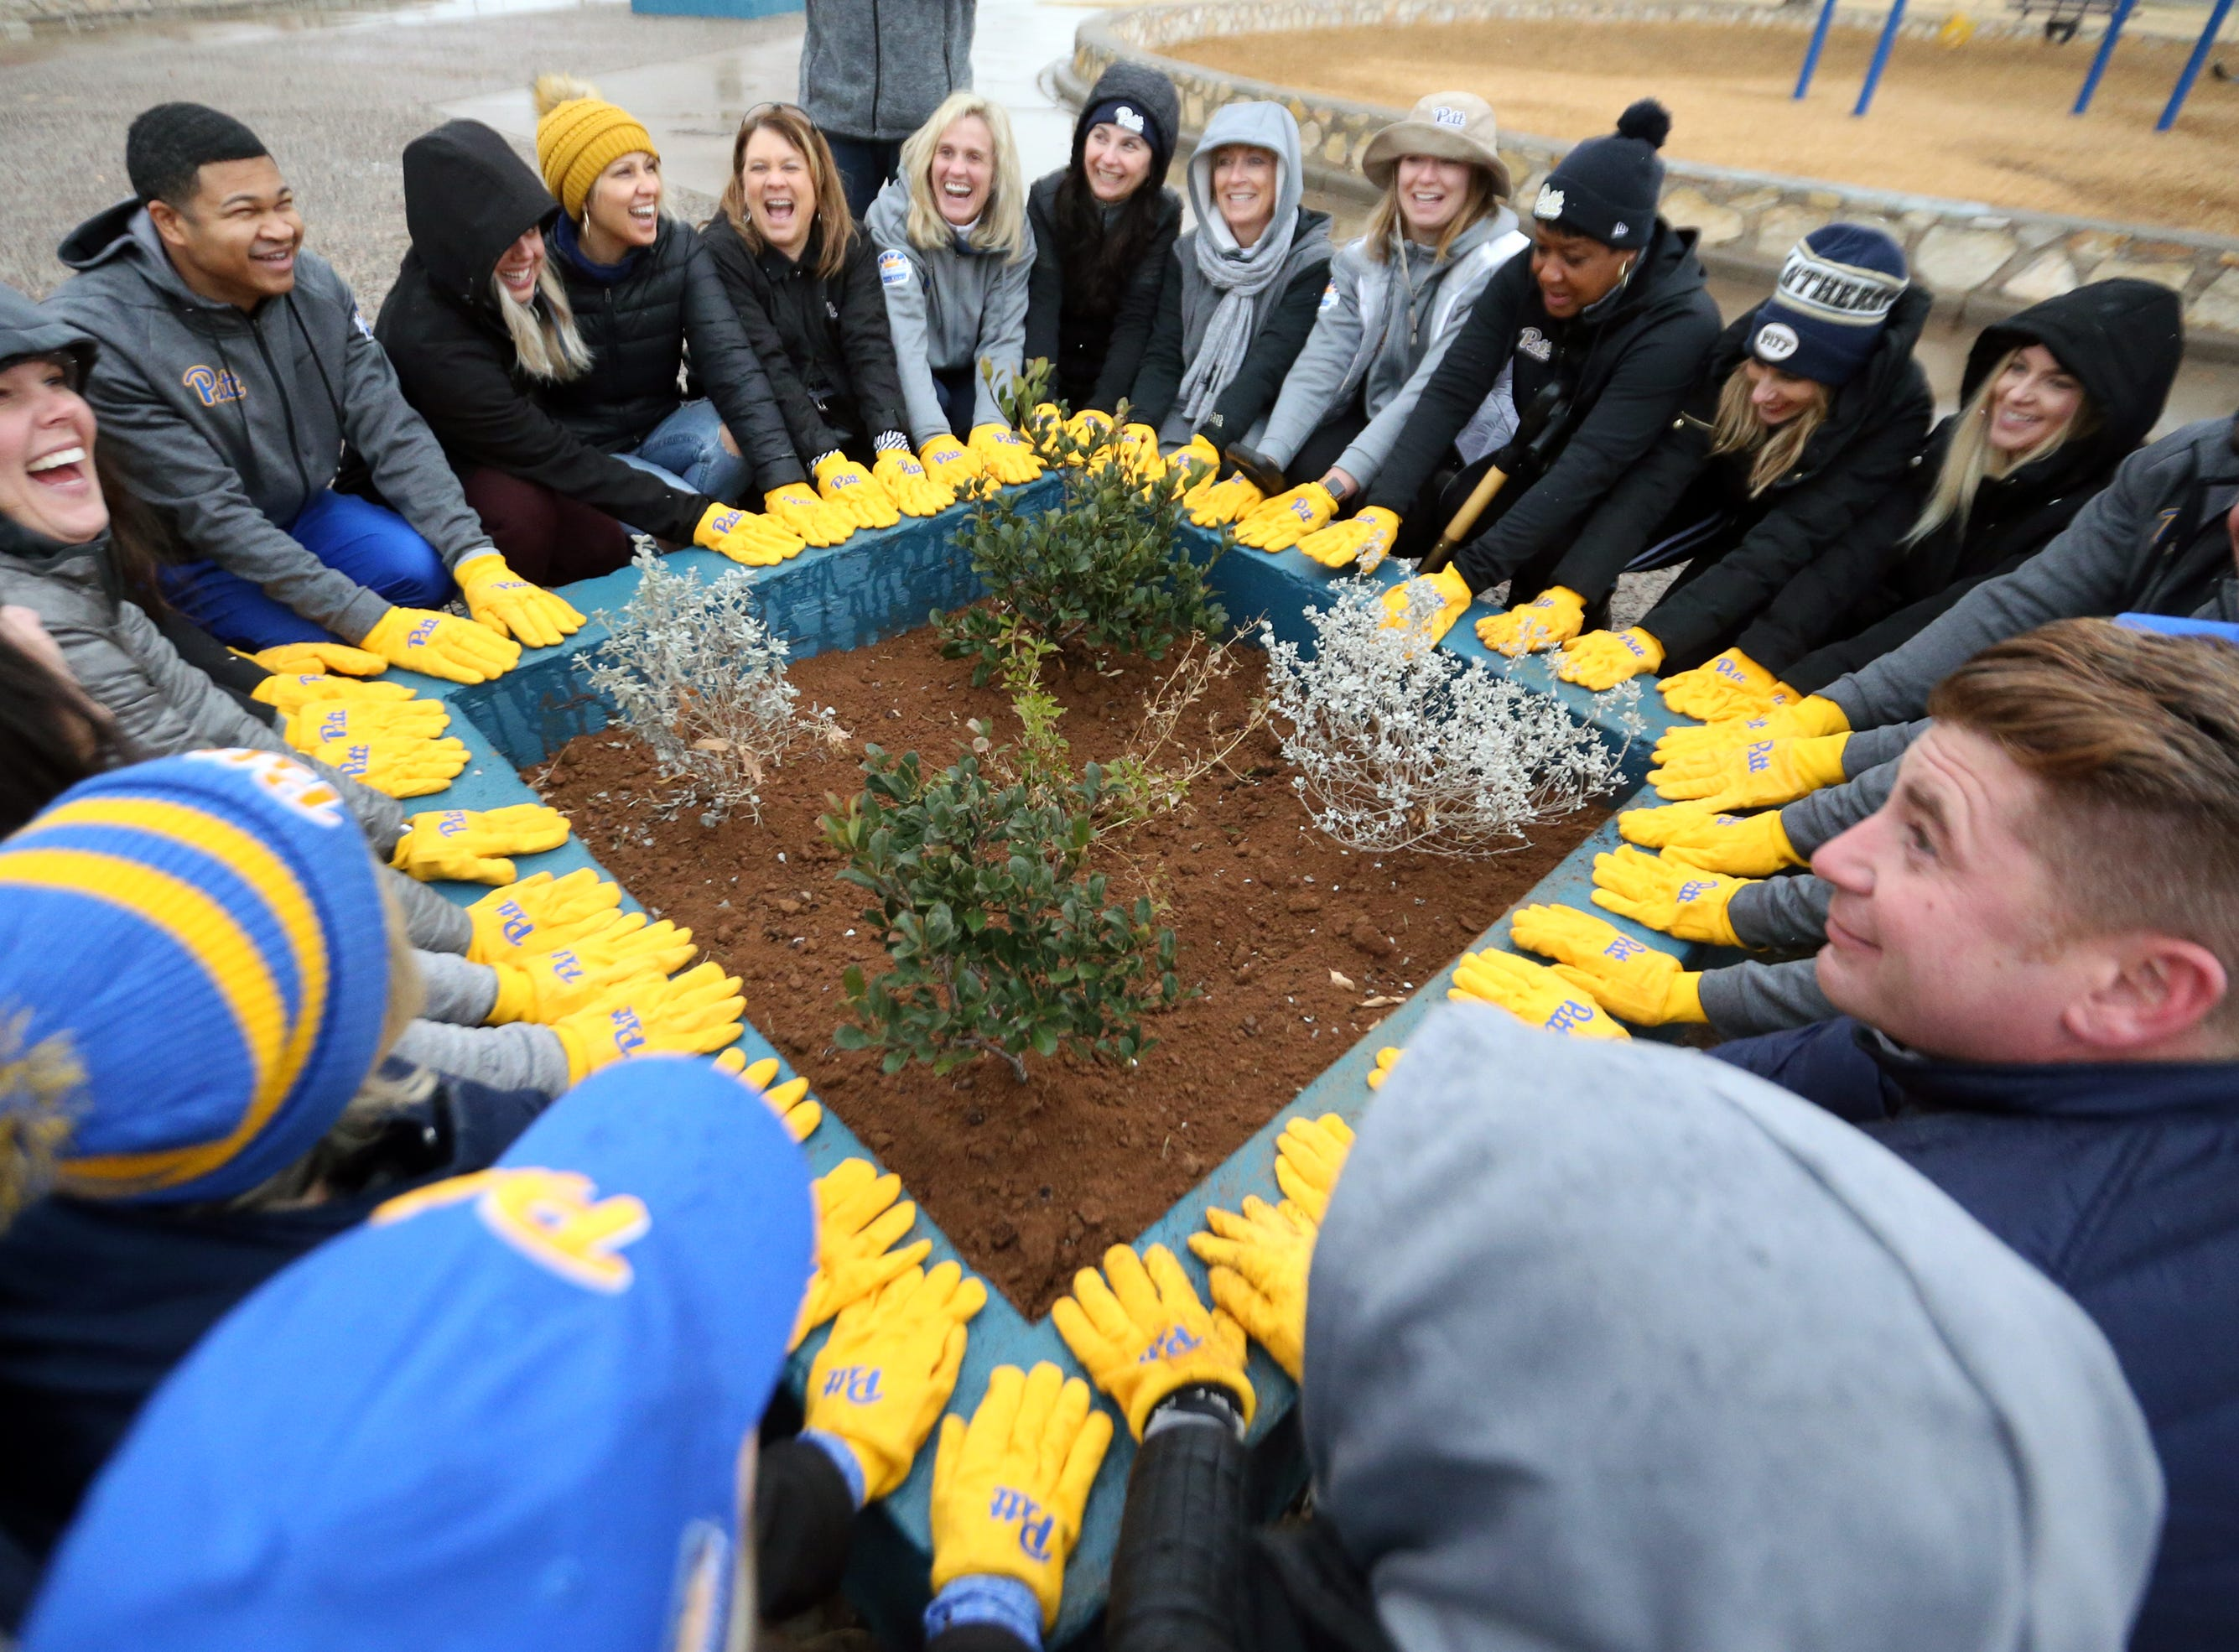 University of Pittsburgh athletic department staff and spouses from the coaching staff pose around a planter with their yellow Pitt gloves after planting shrubs there in the playground area of Veterans Park in Northeast El Paso Friday. Pitt athletic director Heather Lyke said they wanted to give back to the community for the hospitality they have been shown.